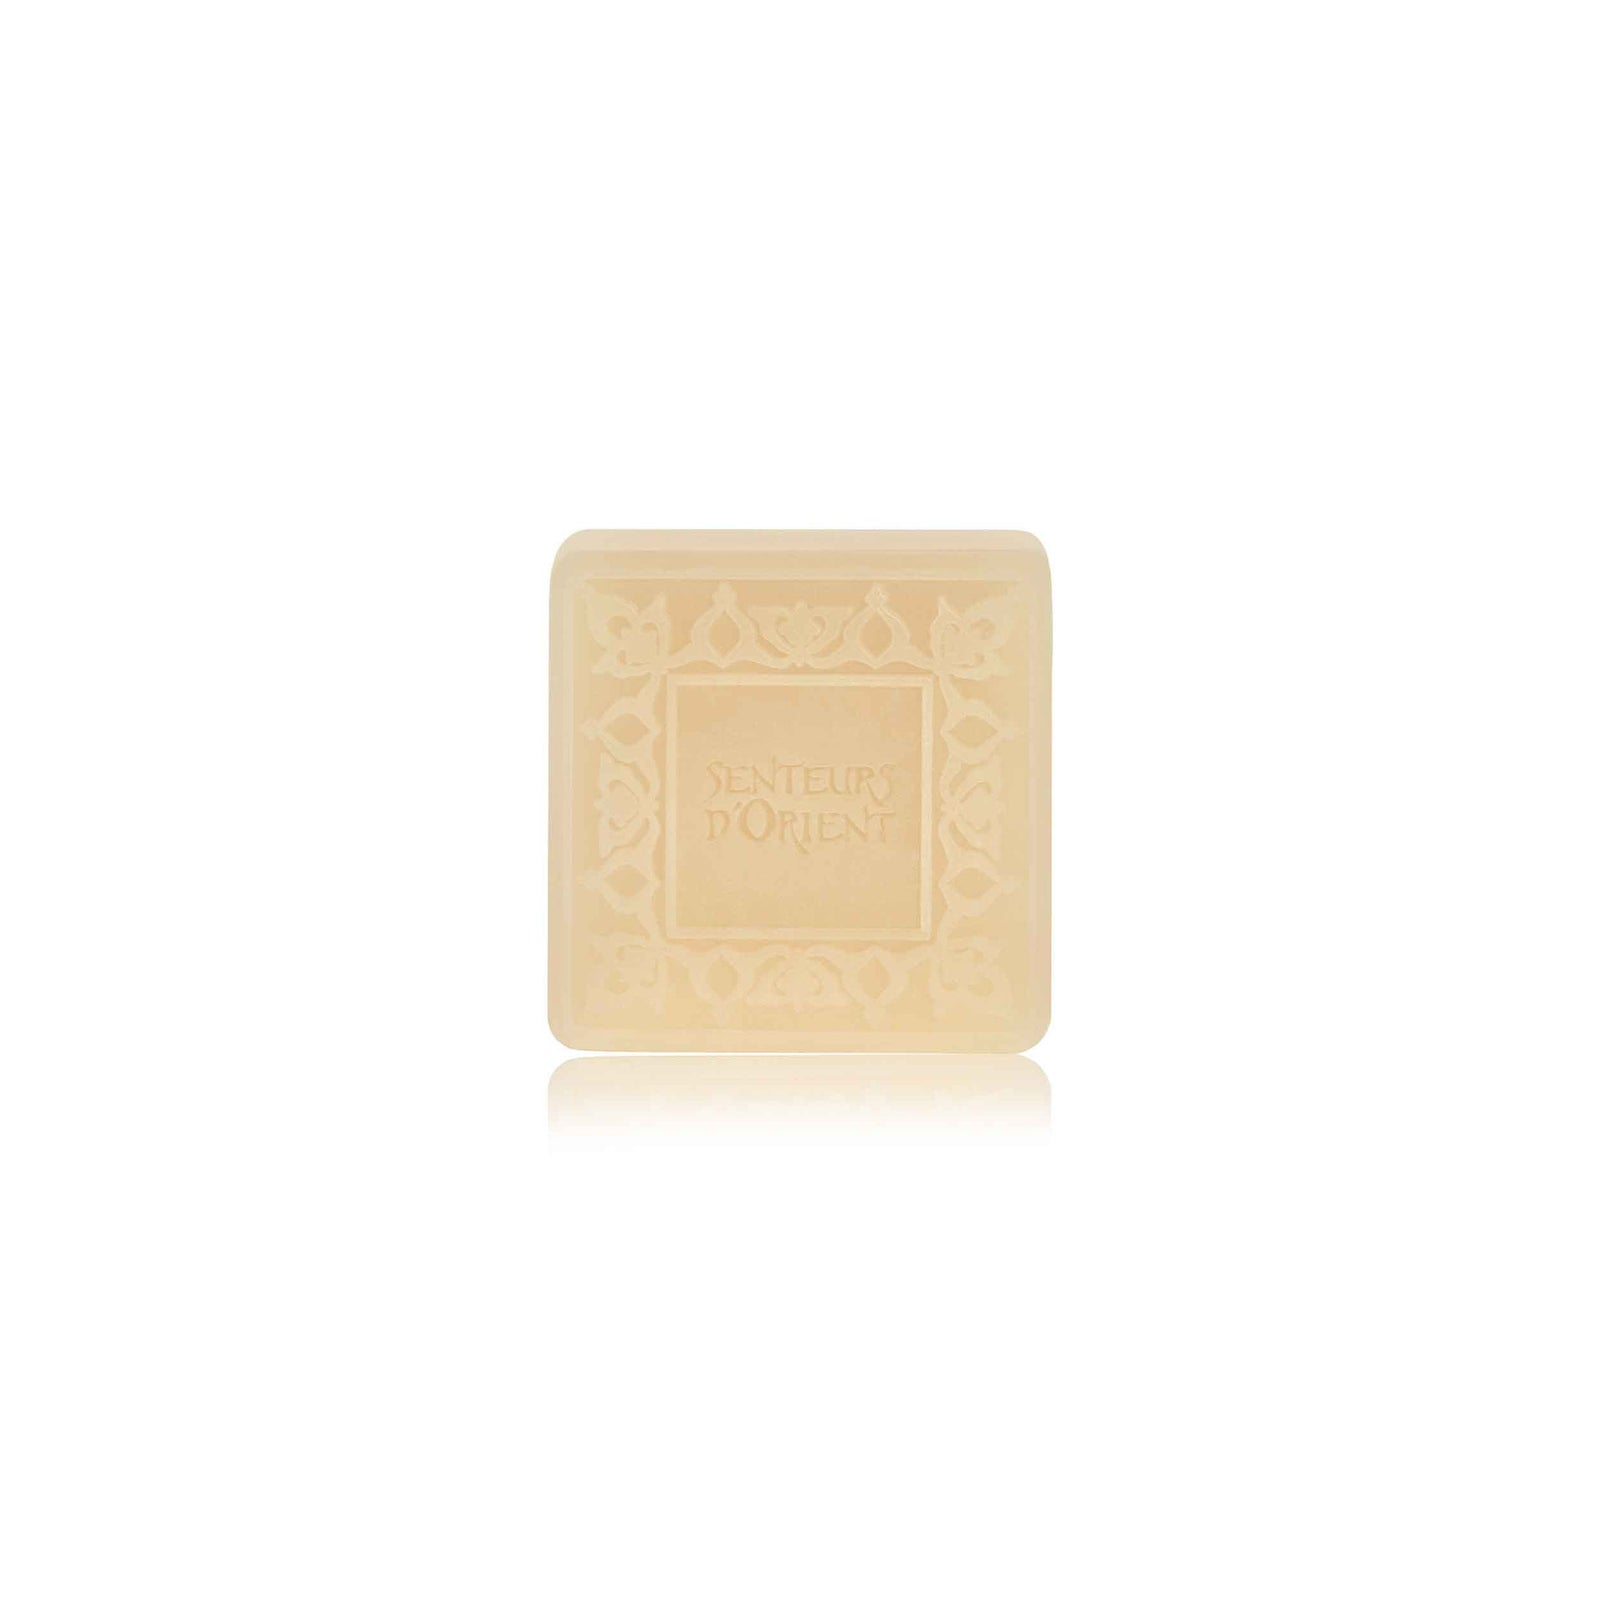 Honey Nourishing Mini Soap